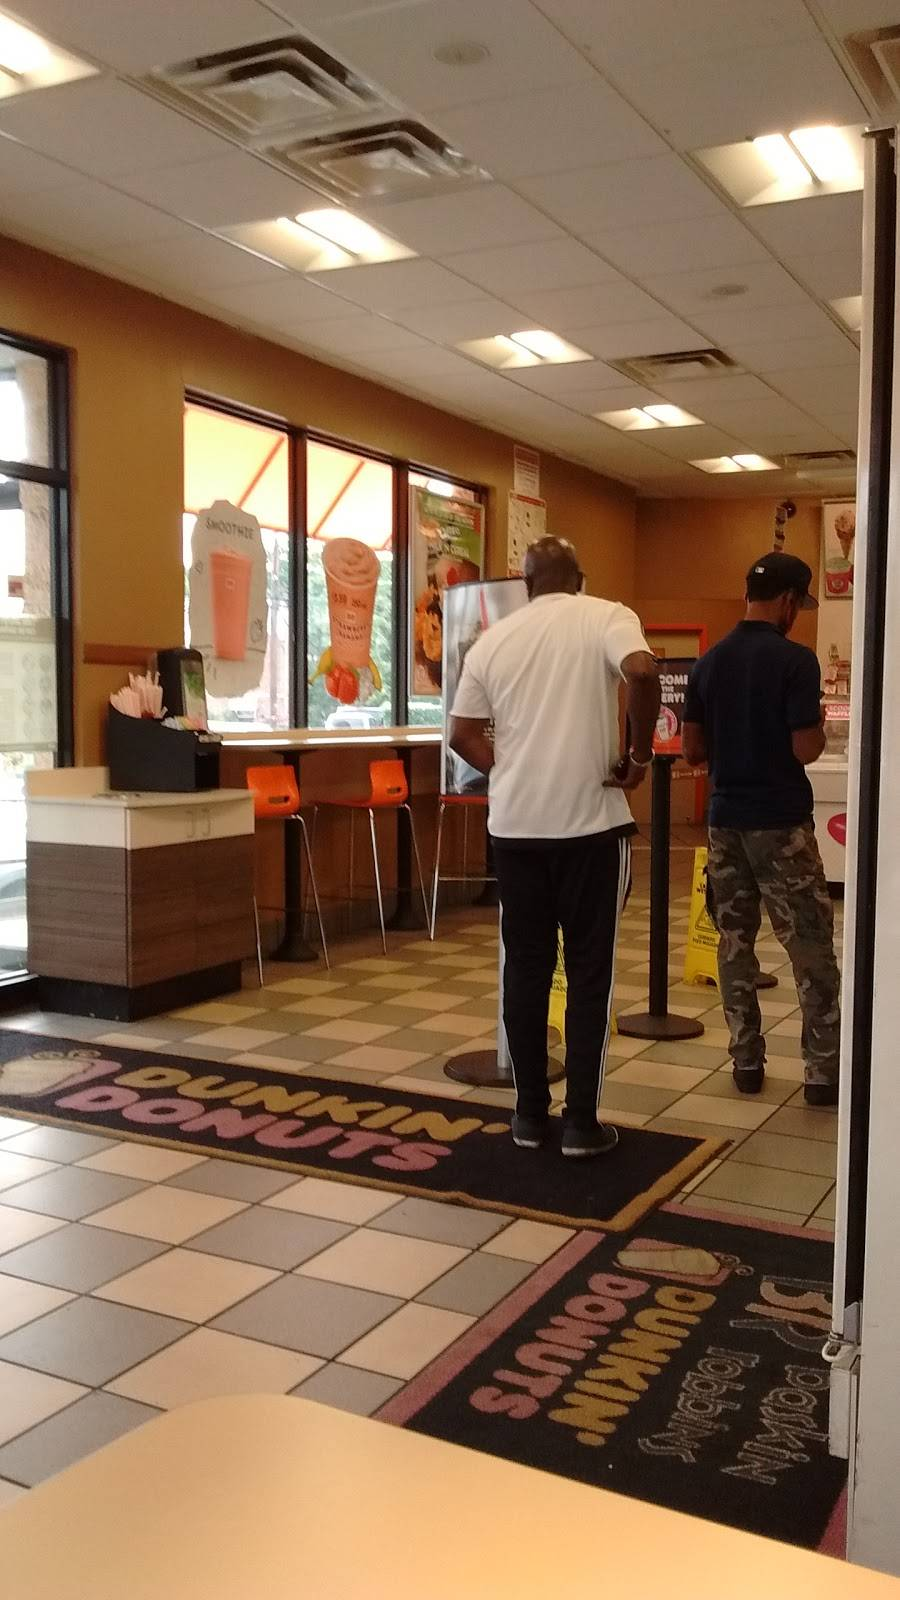 Dunkin Donuts | cafe | 3080 Boston Rd, Bronx, NY 10469, USA | 7182317766 OR +1 718-231-7766